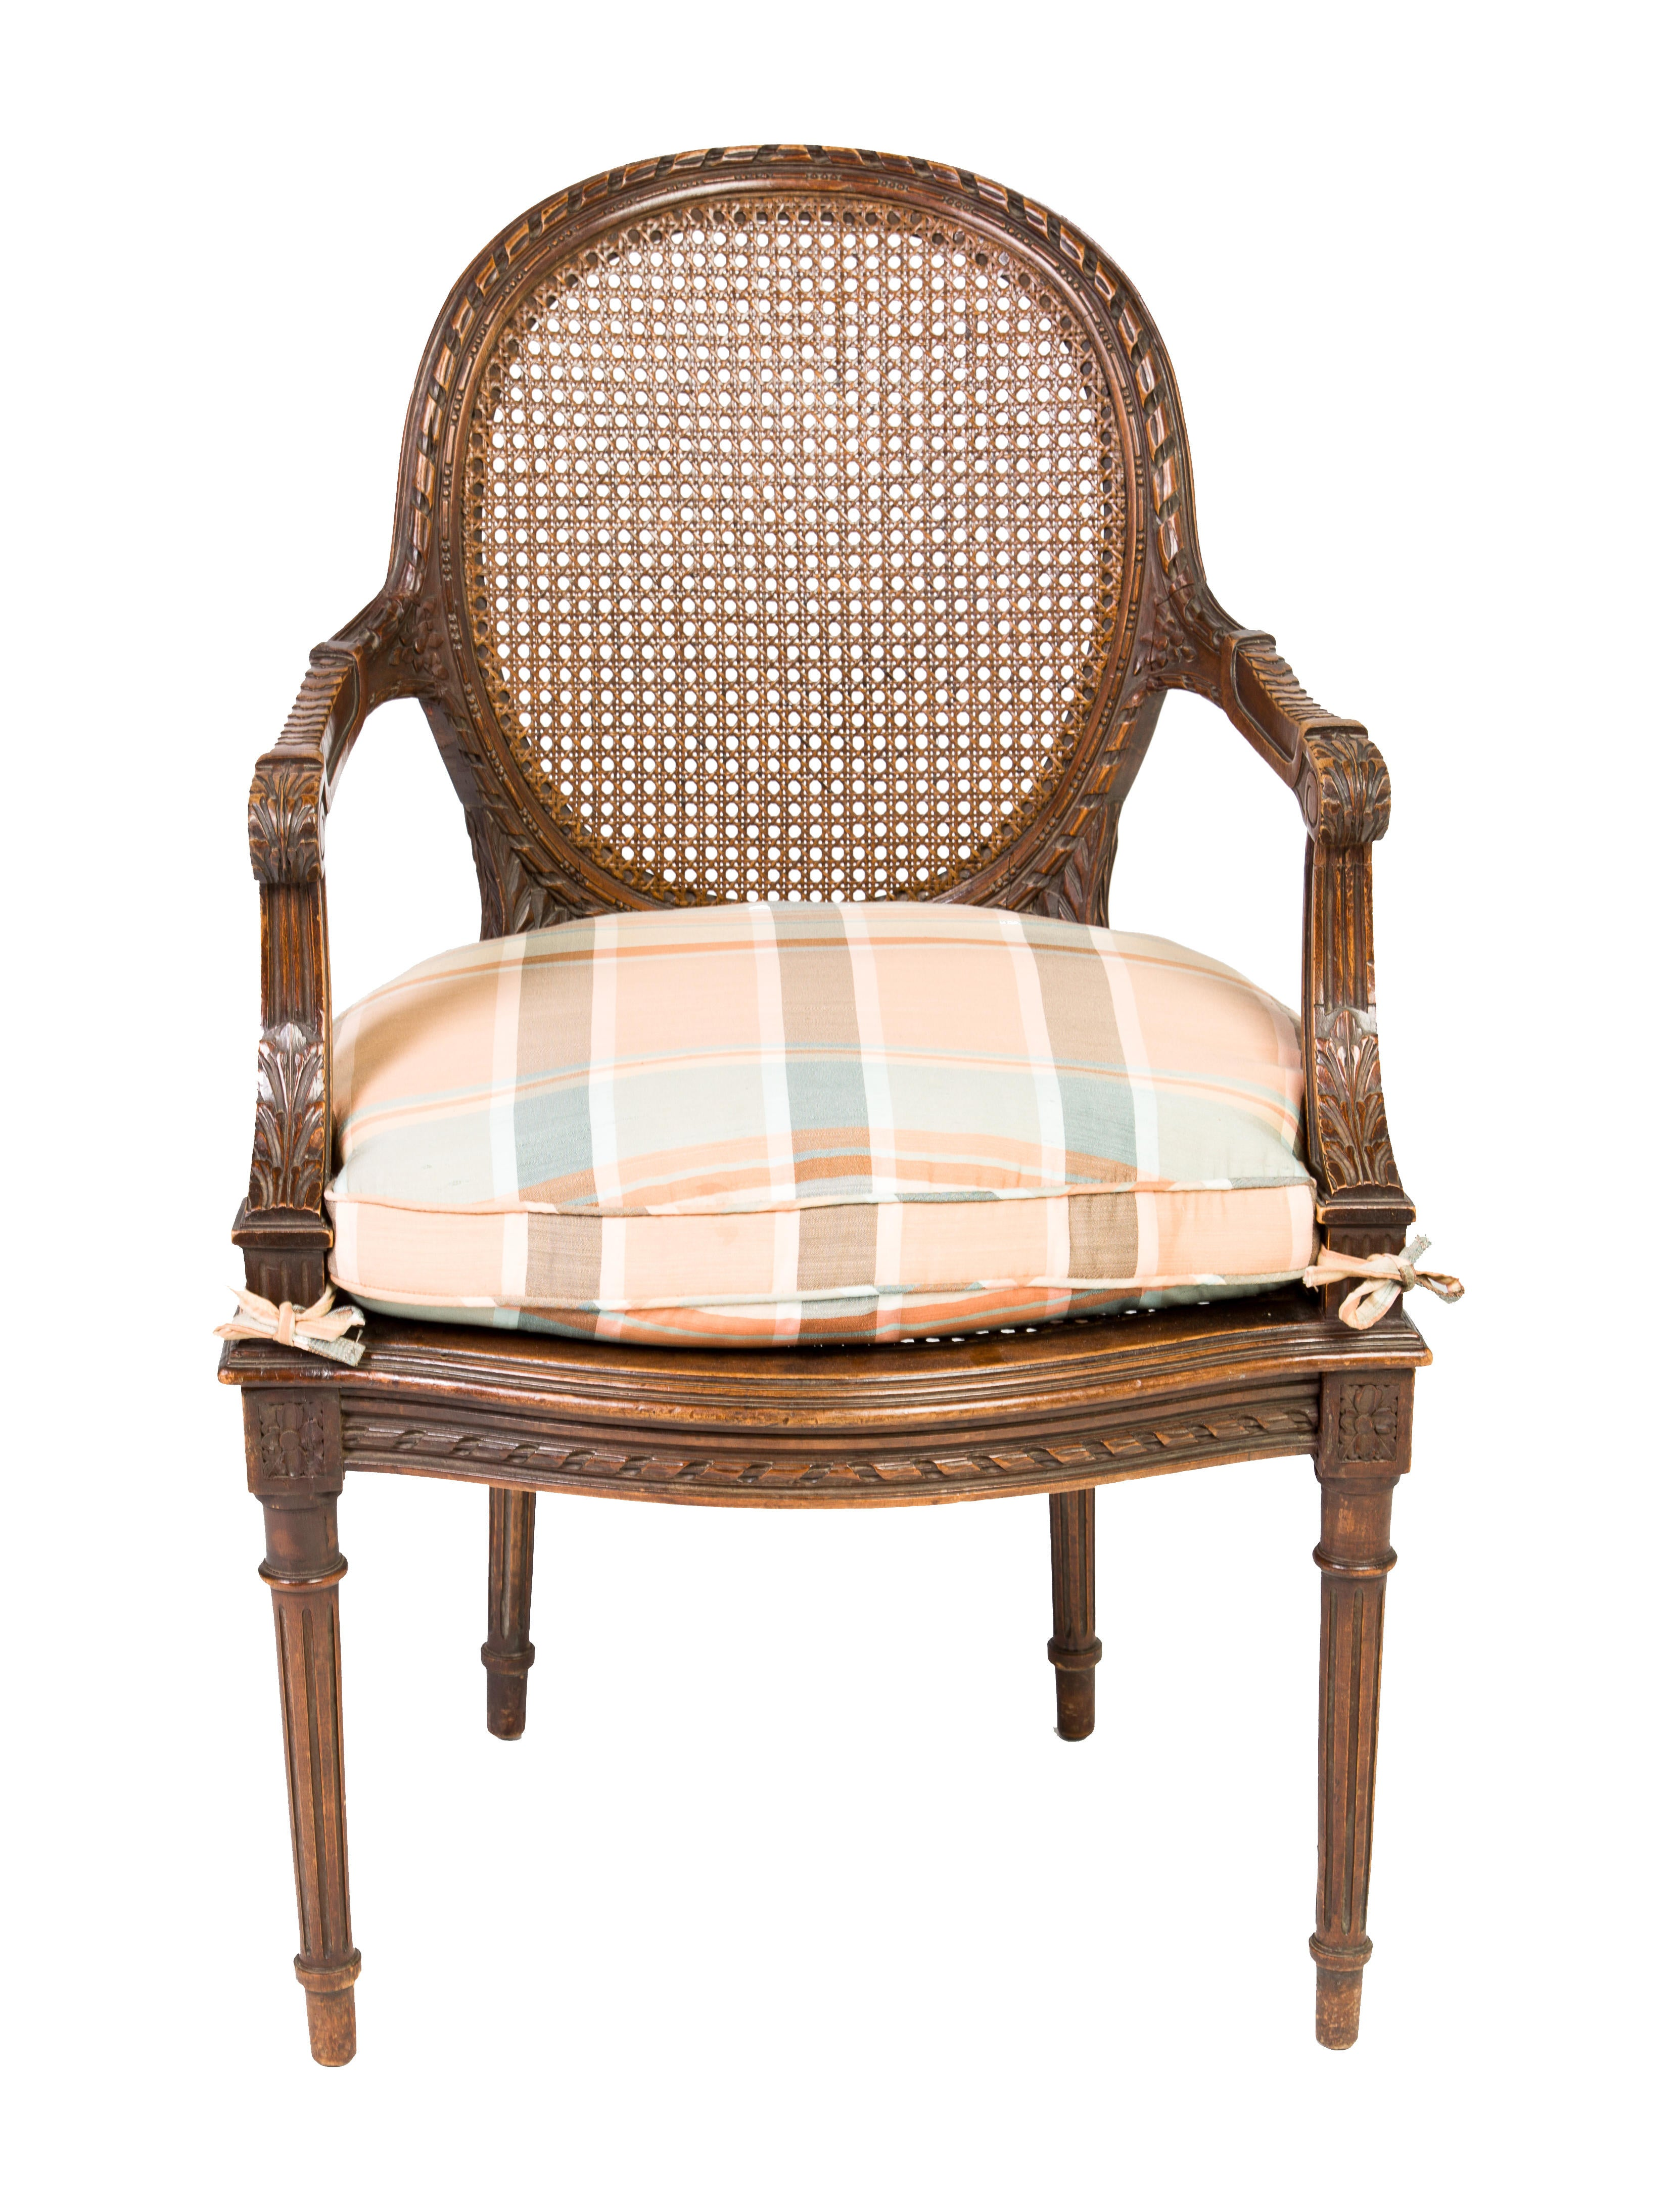 Louis Xvi Style Armchair Furniture Chair20466 The Realreal